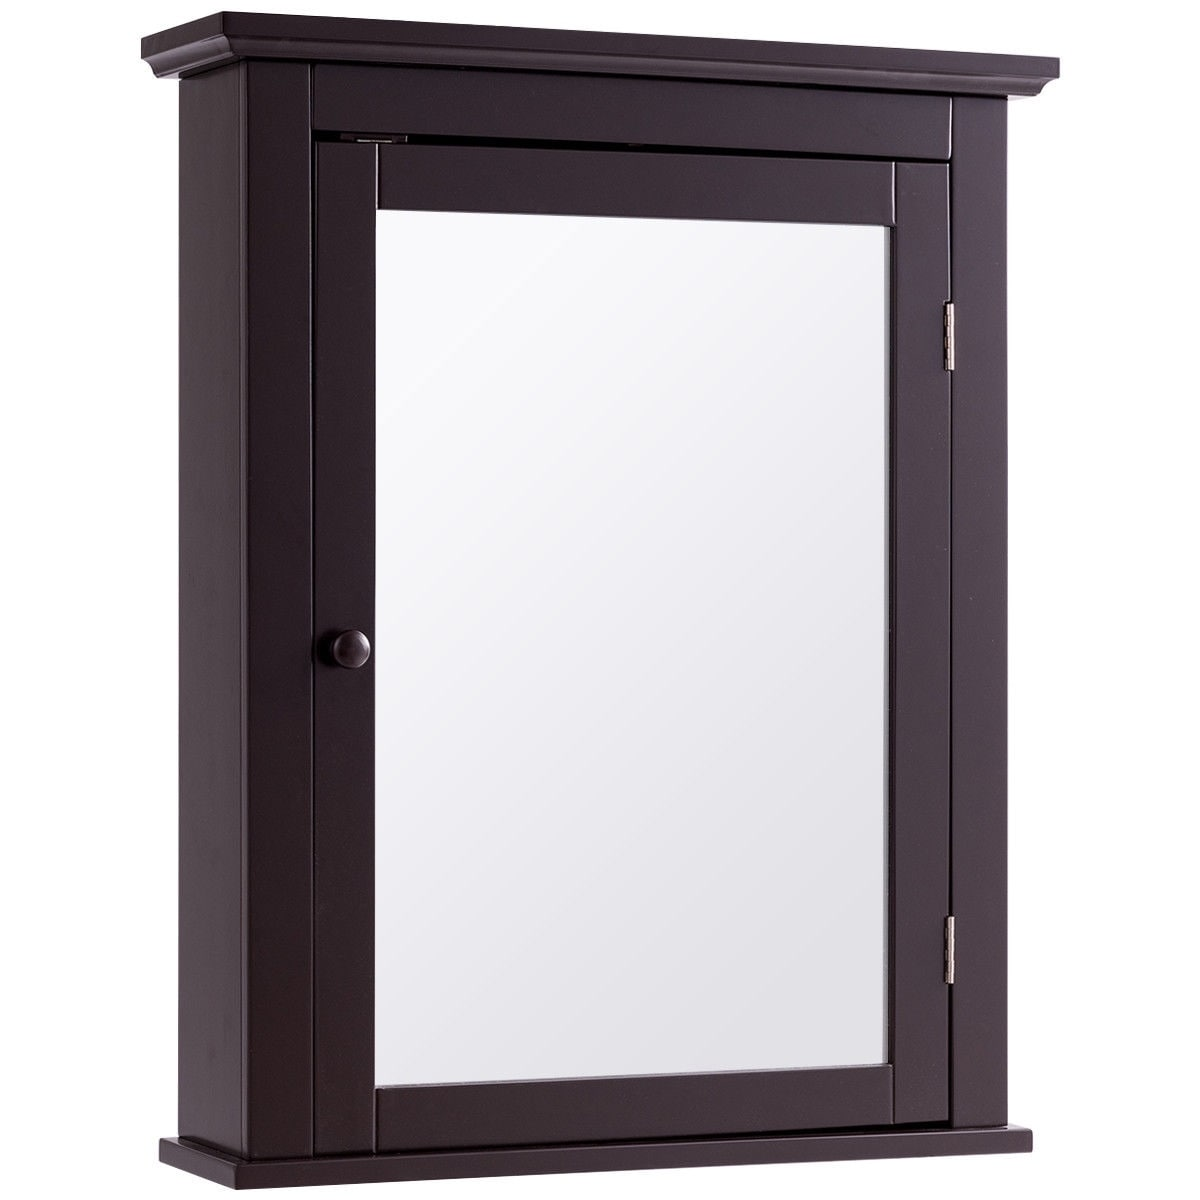 Bathroom Wall Mounted Storage Mirror